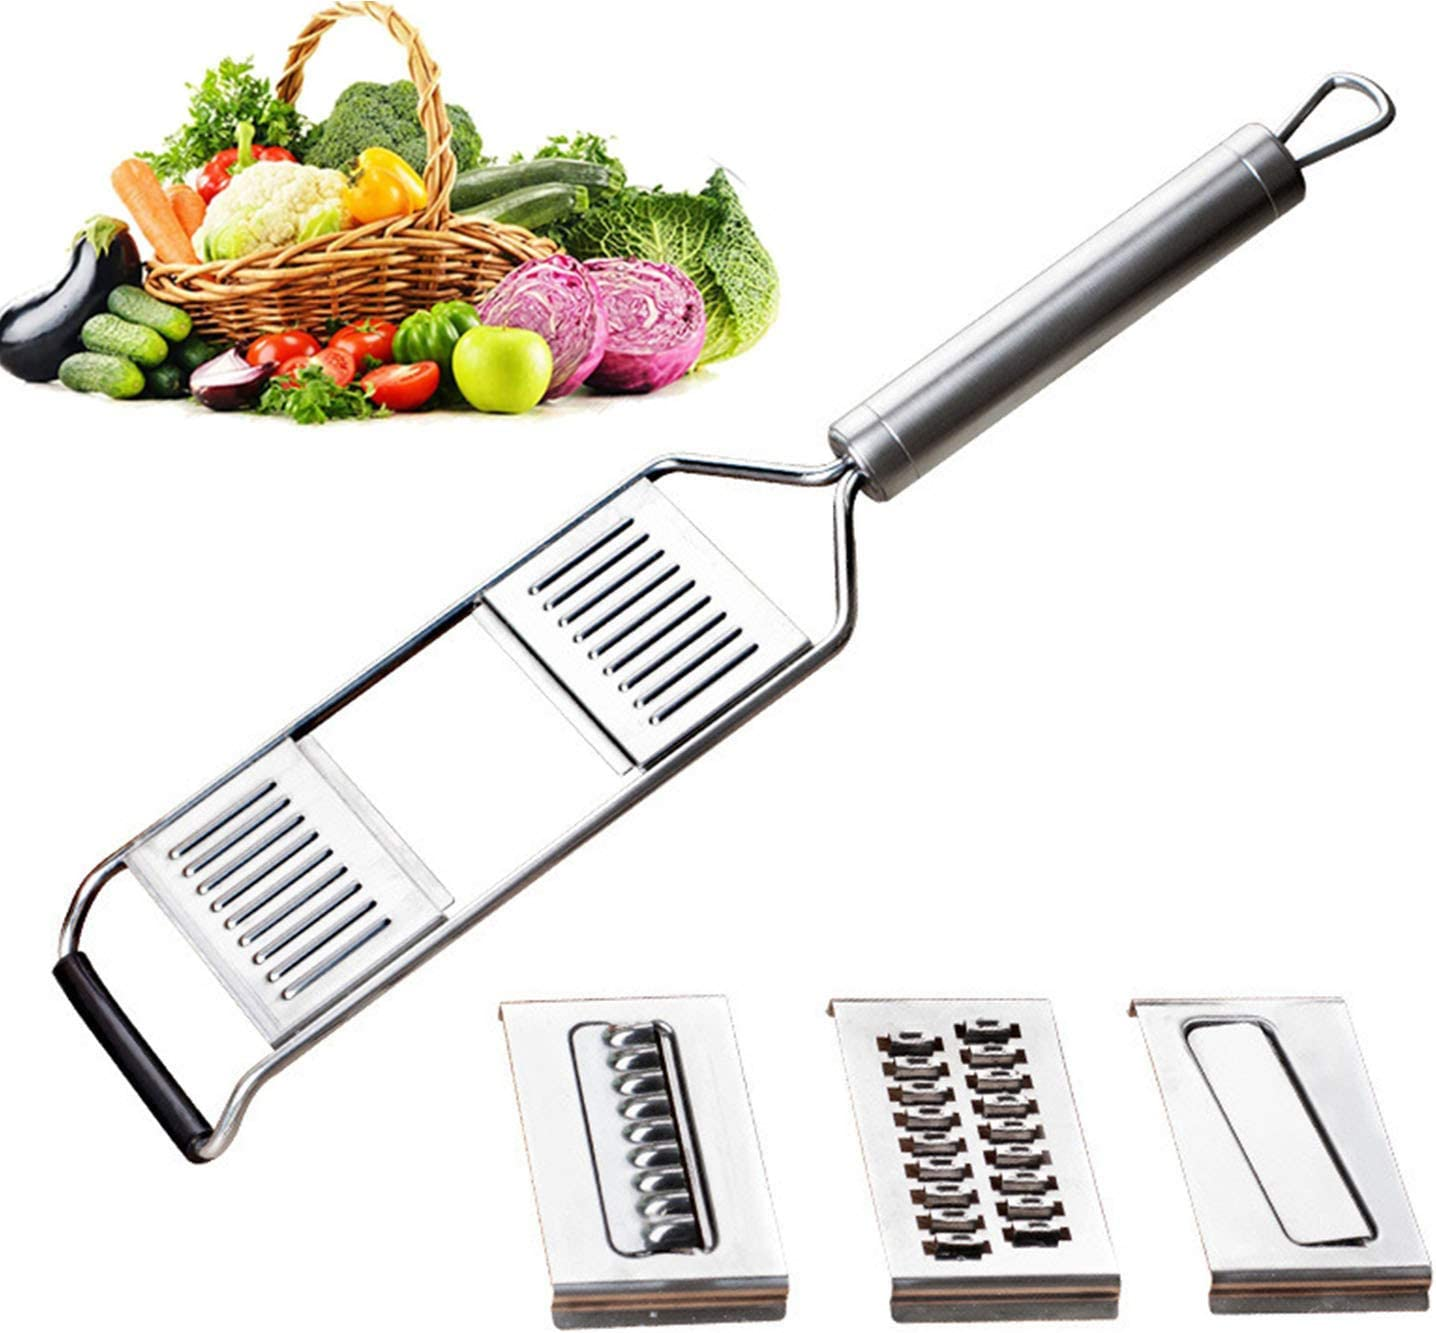 Multi-purpose Vegetable Slicer, Handheld Vegetable Slicer, 3-in-1 Manual Stainless Steel Flat Grater, Perfect for Salad Zucchini Carrots Onions and All Vegetable